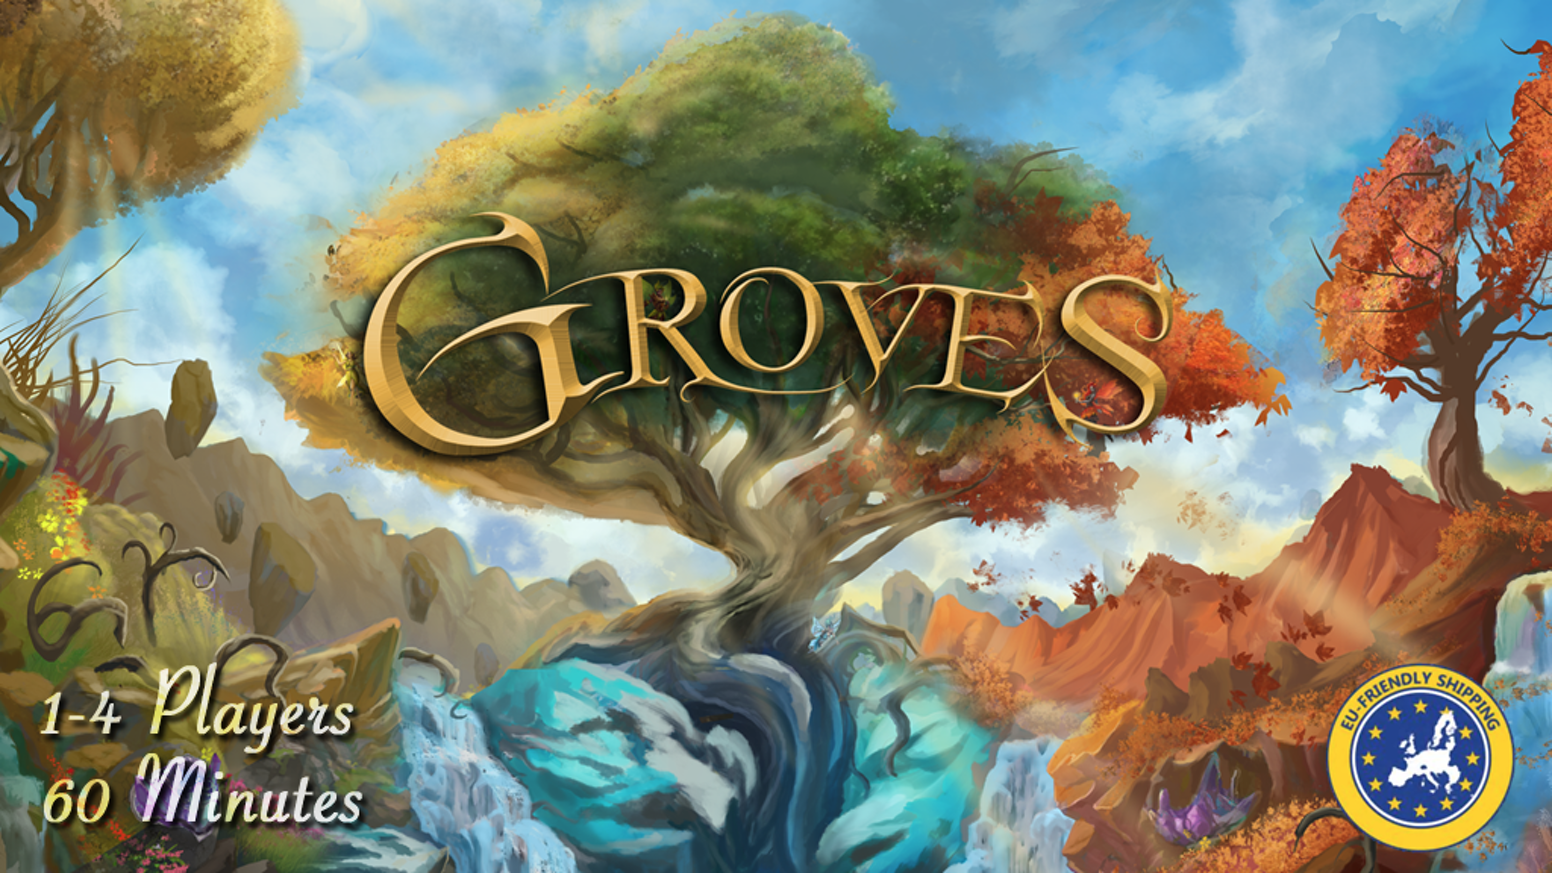 Build beautiful groves, manage your elemental spirits and earn the most dominion in this board game for 1-4 players, ~60 minutes.